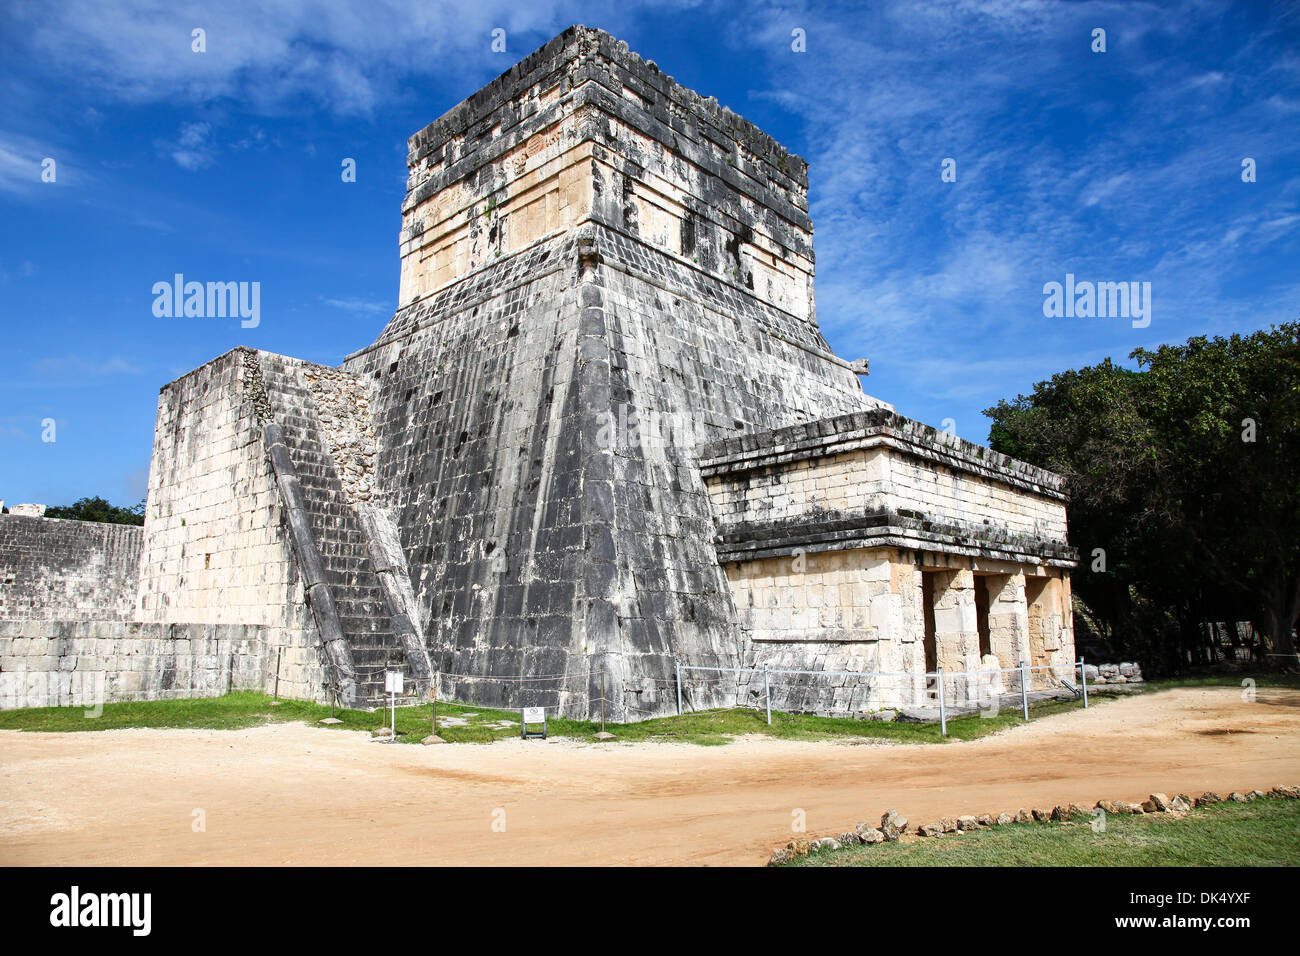 Temple of the Jaguars Chichen Itza Mayan ruins on the Yucatan peninsular Mexico North America - Stock Image